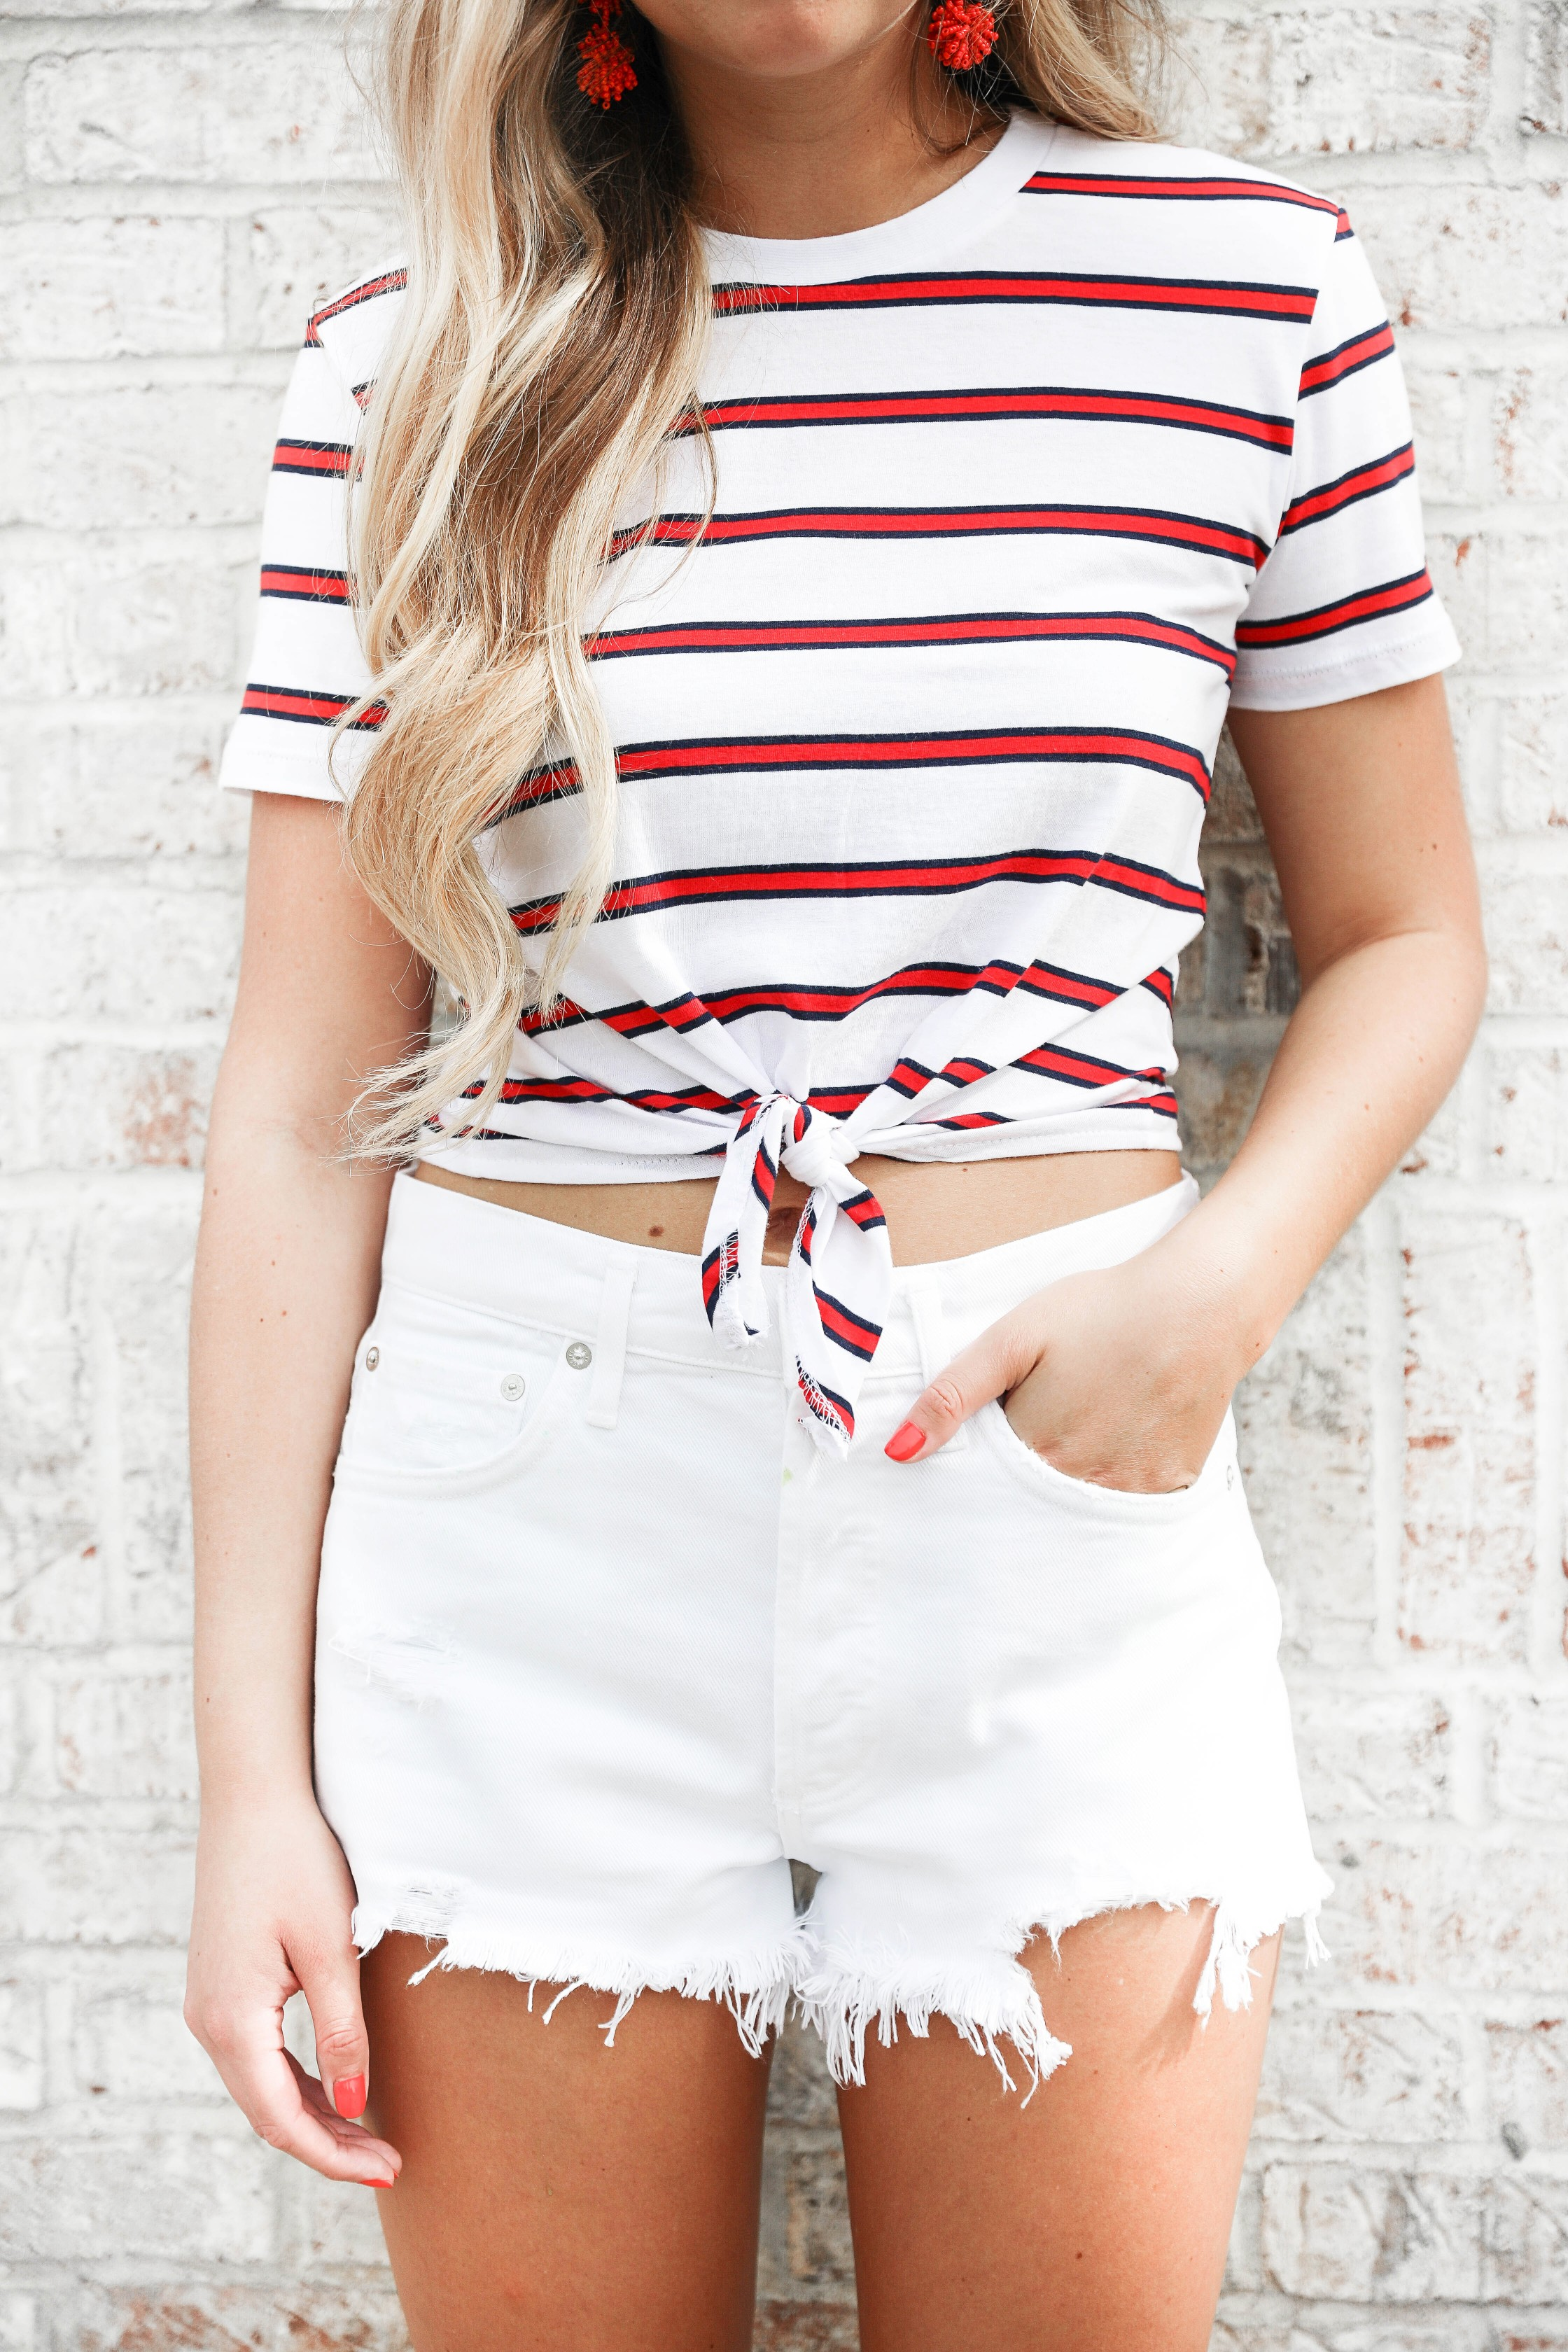 Striped tied boating top! I love tops that are tied like this, the crop is so cute with the stripes! Paired with my favorite white jean shorts that fit so well and my new red statement earrings! Cute snow cone photoshoot! Details on fashion blog daily dose of charm by lauren lindmark